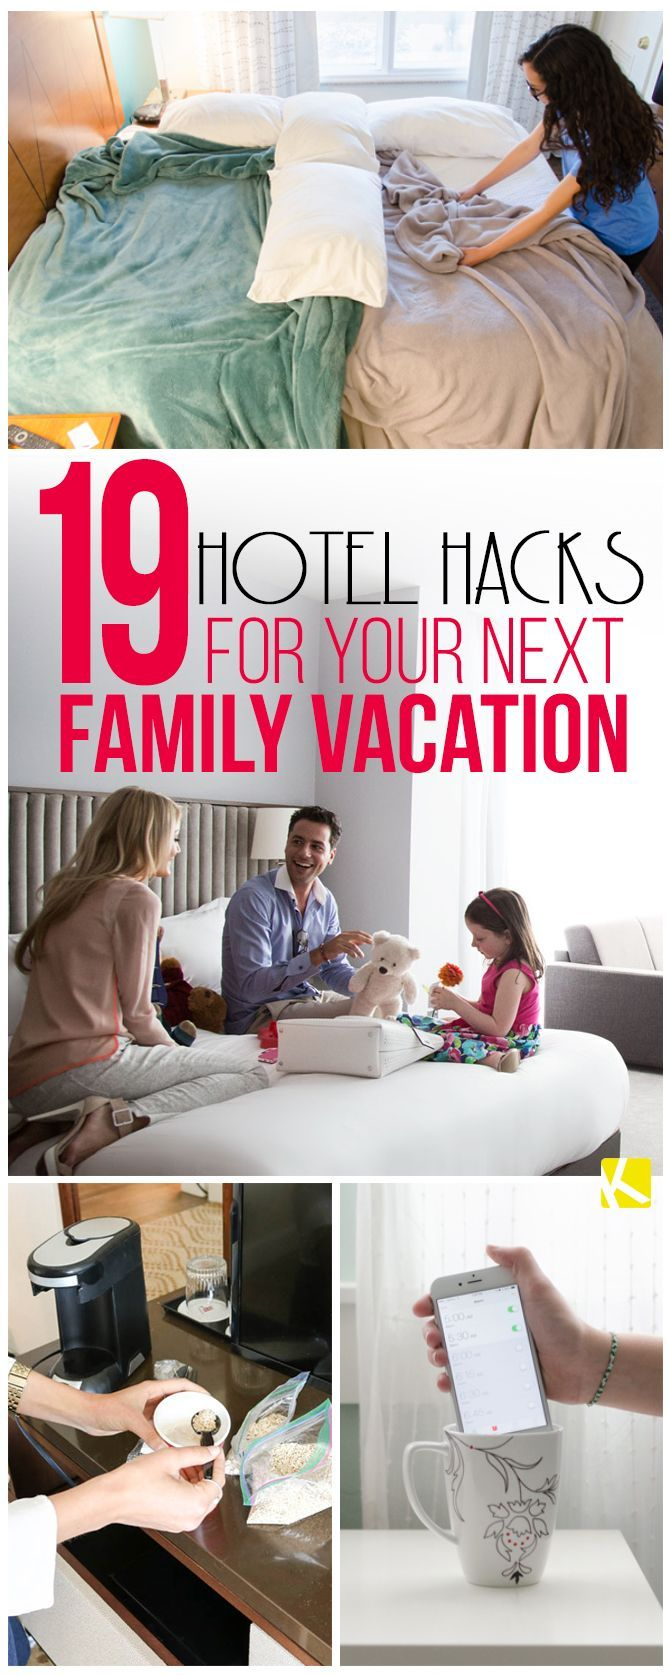 19 Clever Hotel Hacks for Your Next Family Vacation